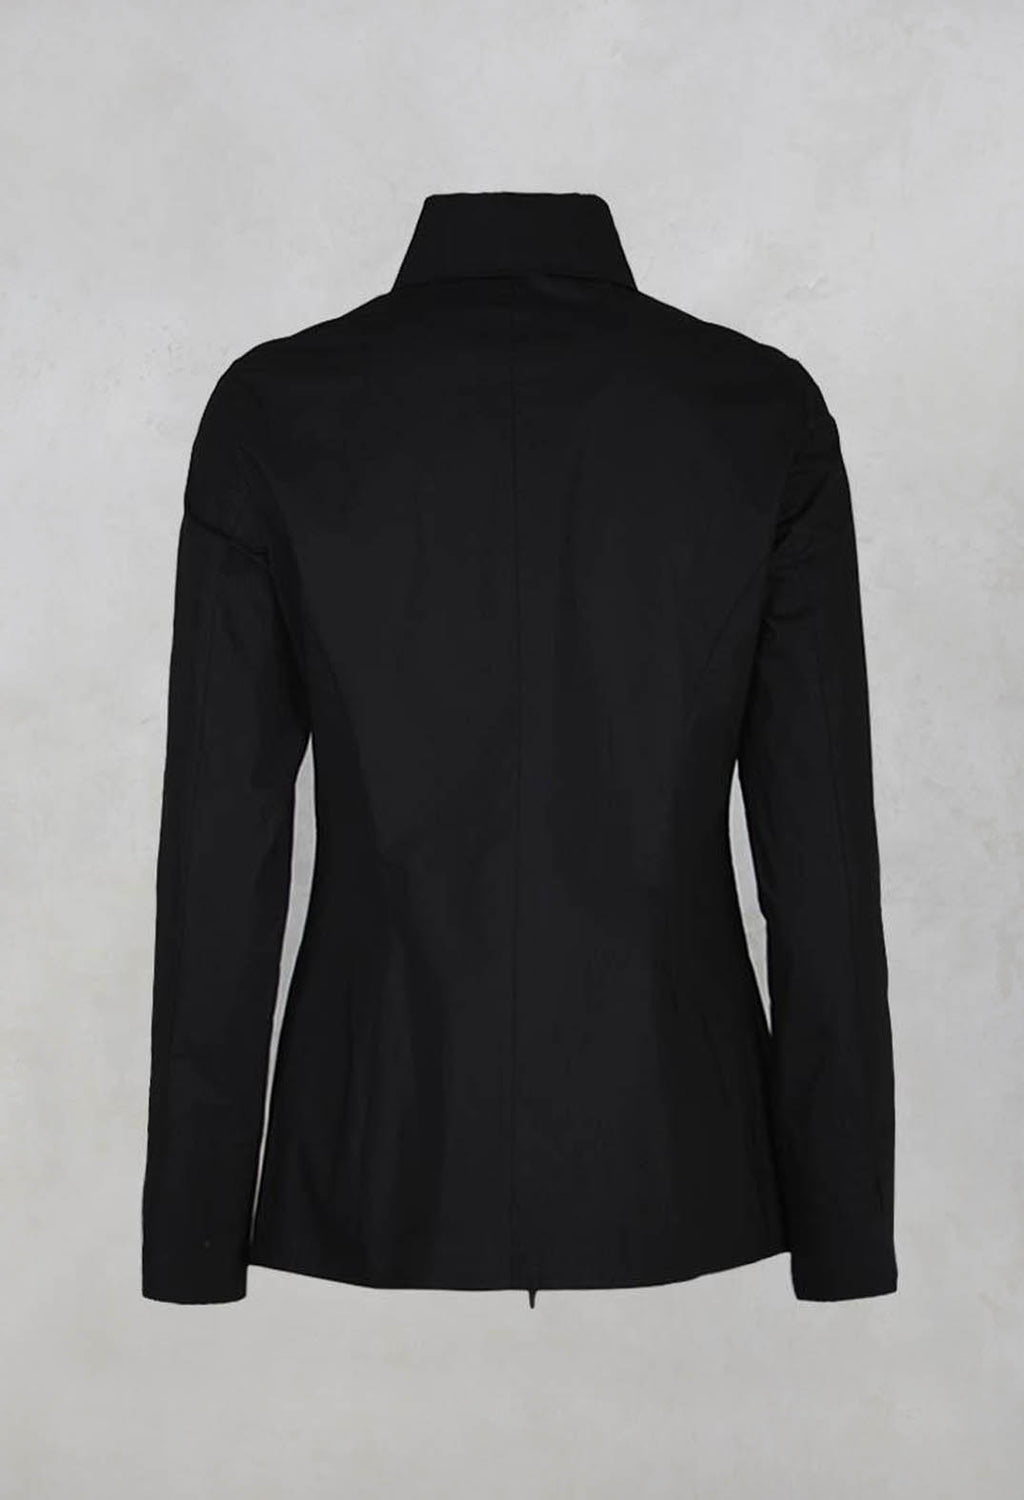 Long Sleeved Blouse with Zip Detail in Black